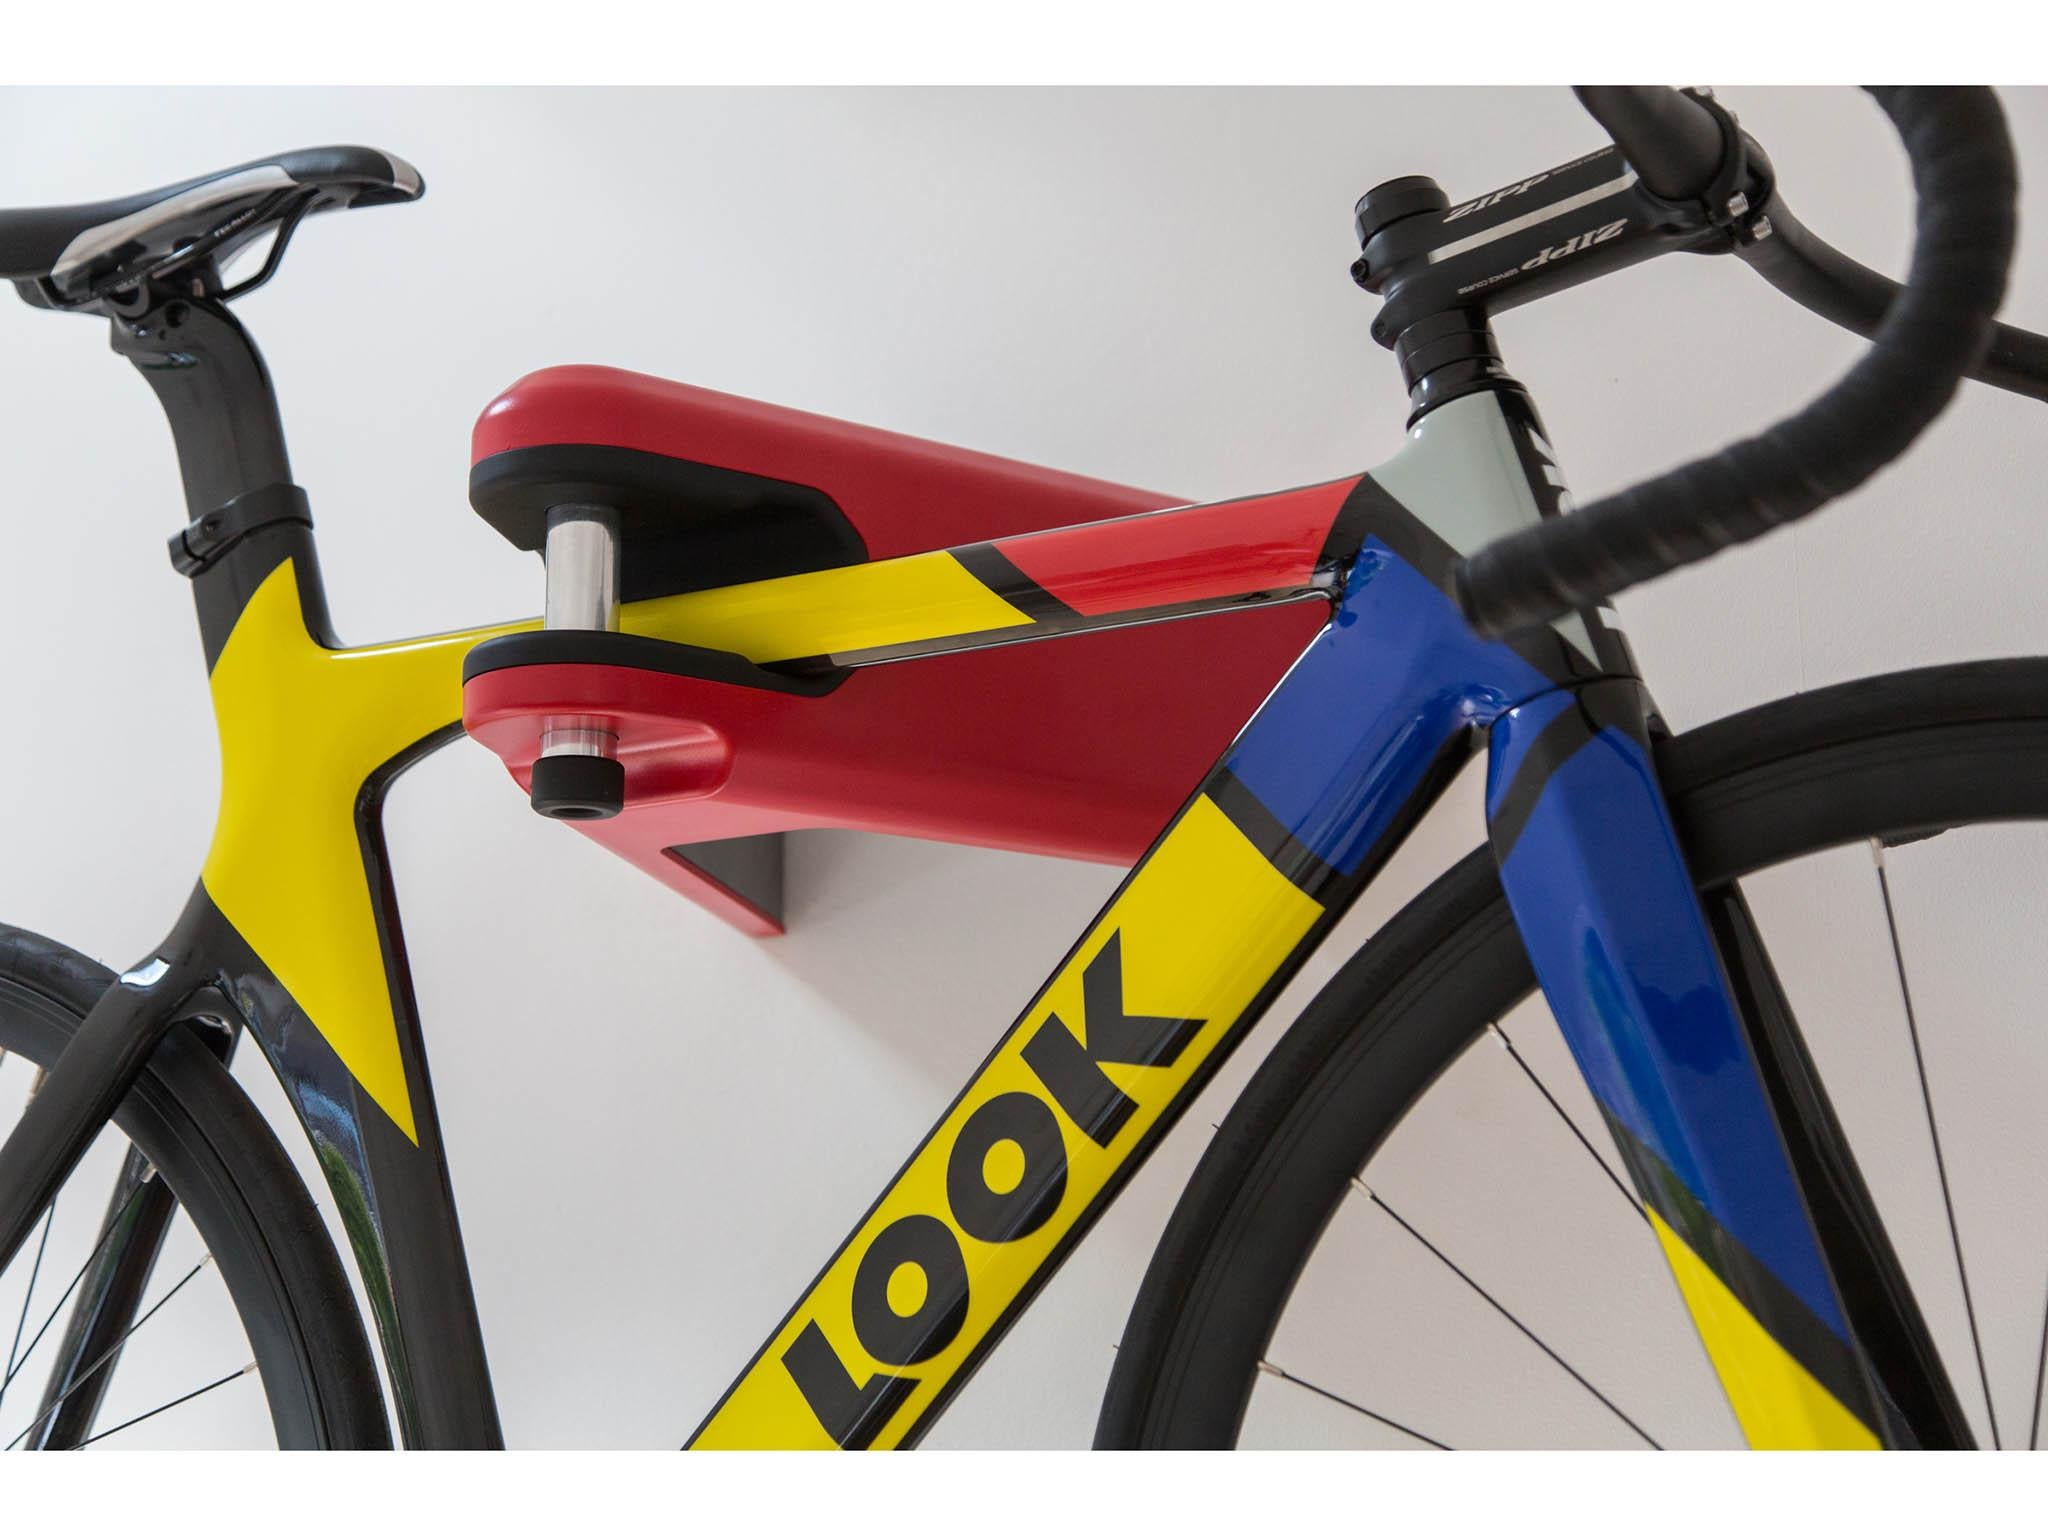 10 best bike locks | The Independent